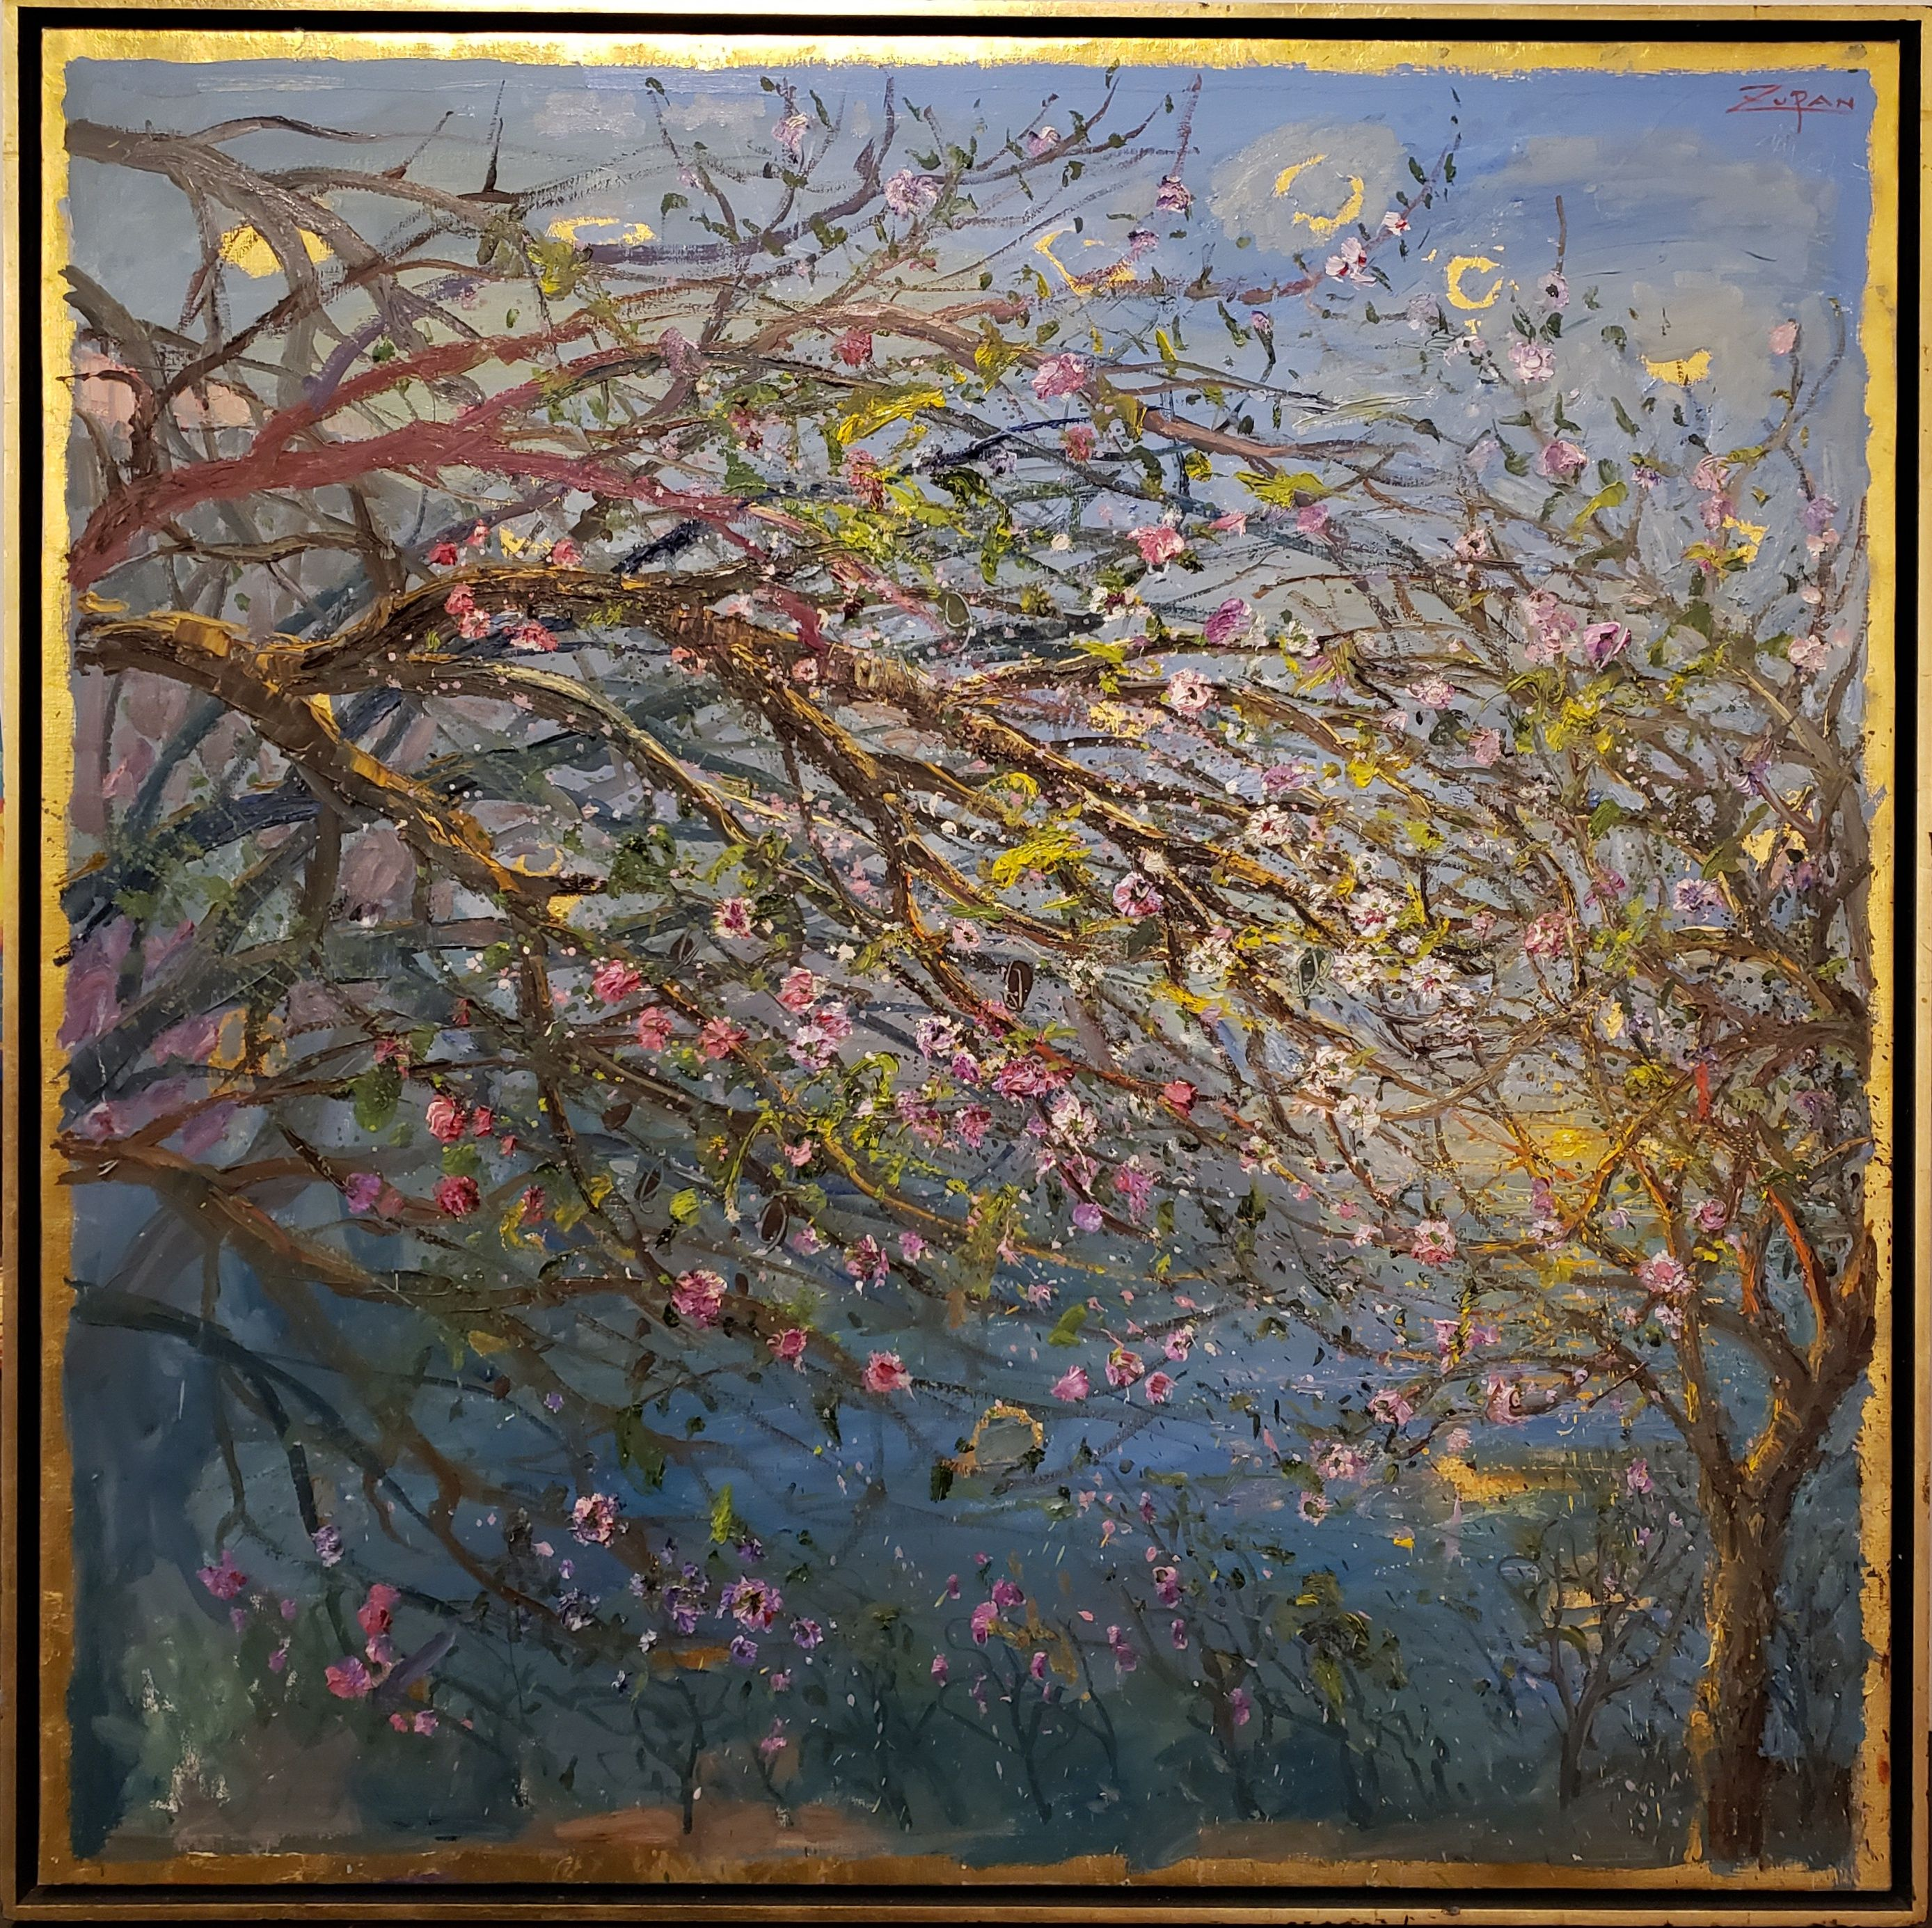 Bruno Zupan - Flowering Branches By The Sea; Painting; Original oil on canvas with gold leaf underpaint; Signed; Fine Art; Off The Wall Gallery Houston